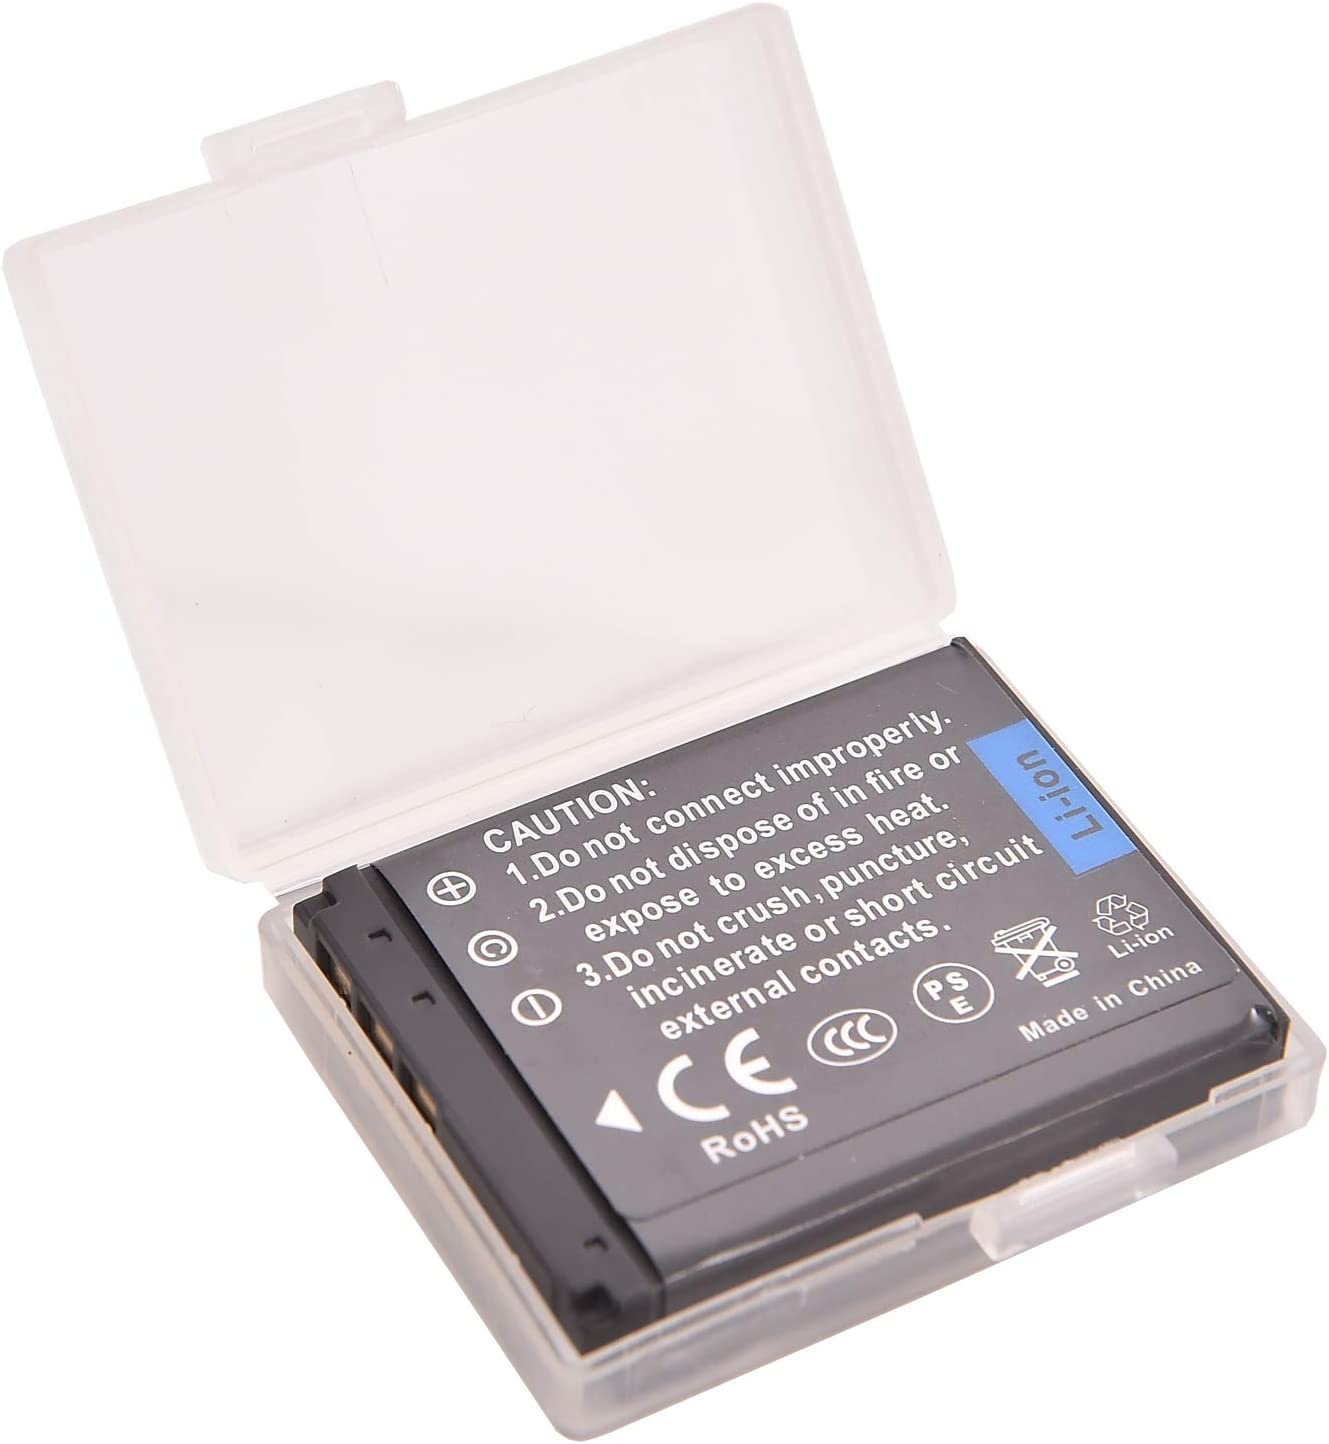 DSTE/® 2x NP-FR1 Rechargeable Li-ion Battery for Sony Cyber-shot DSC-F88 DSC-P100 DSC-P100//L DSC-P100//LJ DSC-P100PP DSC-P100//R DSC-P100//S DSC-P120 DSC-P150 DSC-P150//B DSC-P150//L DSC-P150//S DSC-P200 DSC-P200//B DSC-P200//R DSC-P200//S Camera